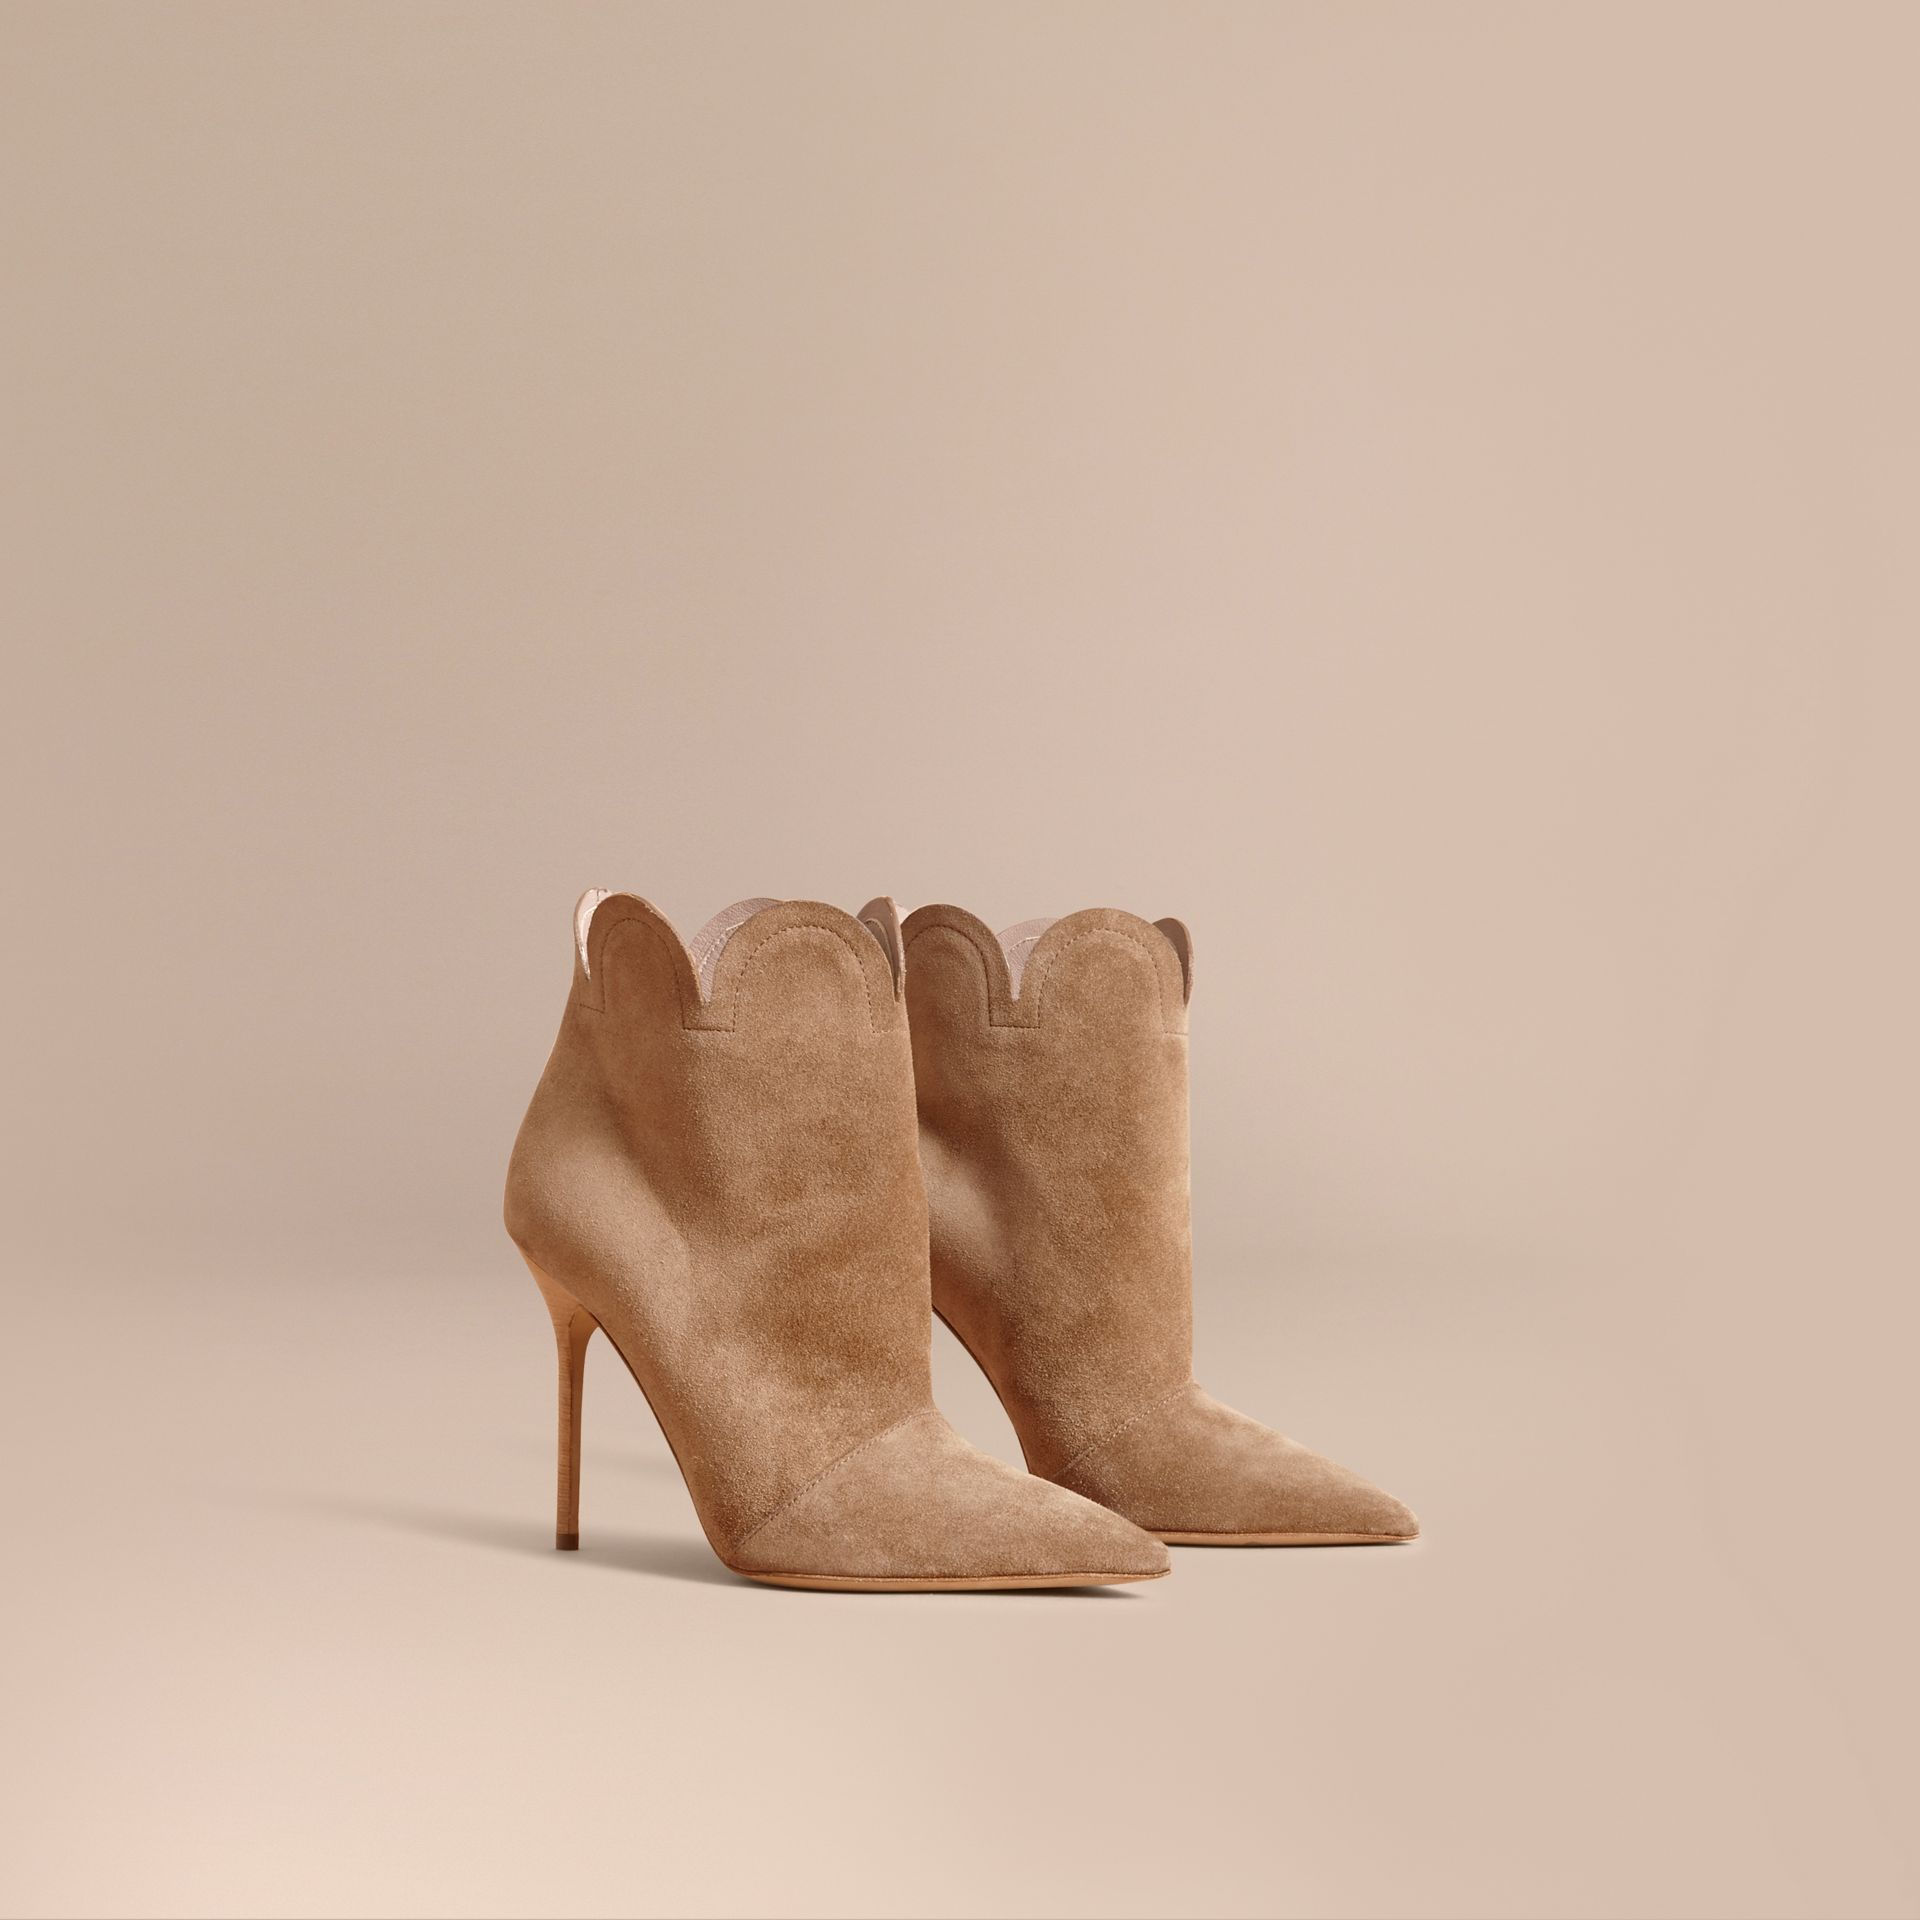 Scalloped Suede Ankle Boots in Sandstone - Women | Burberry - gallery image 1